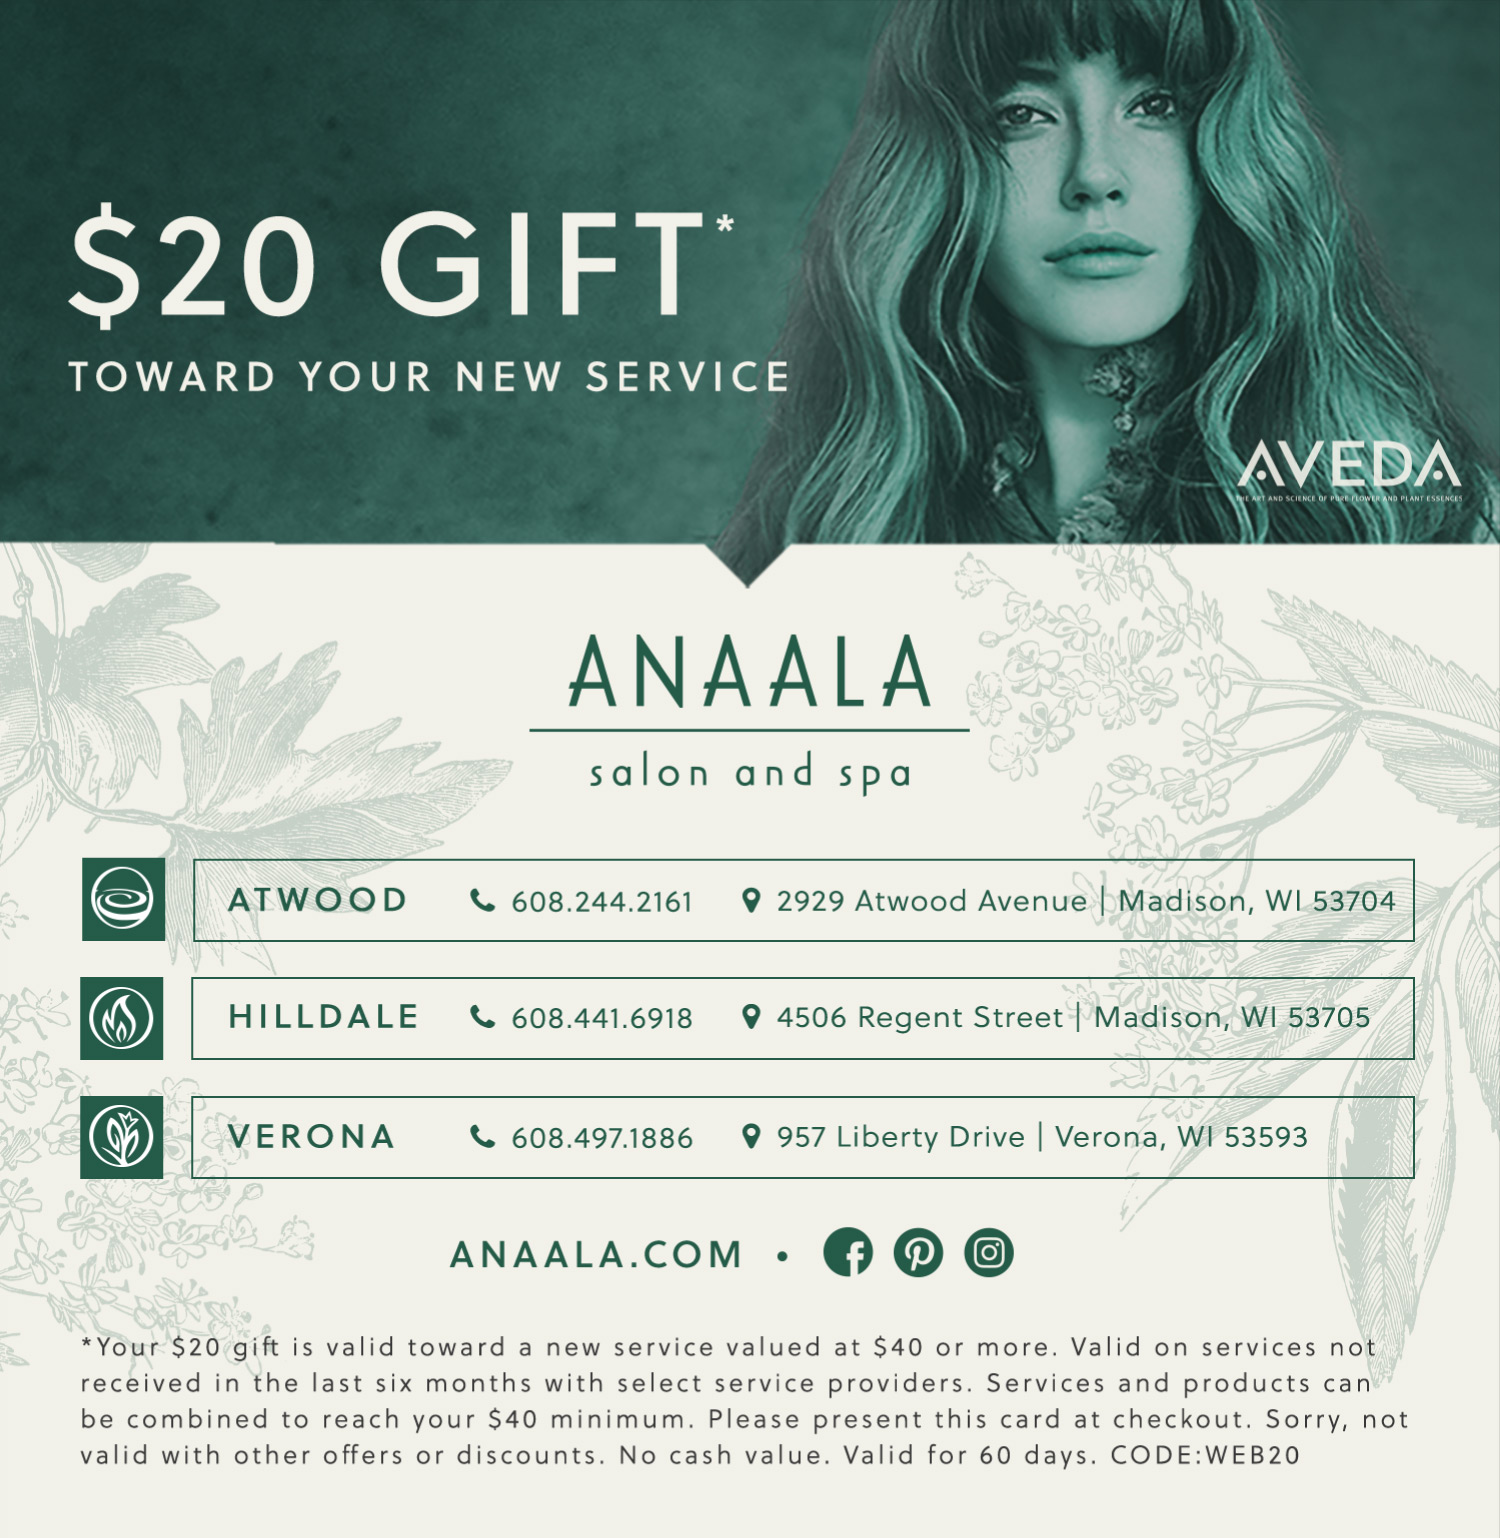 $20 Gift toward your new service at Anaala Salon and Spa.